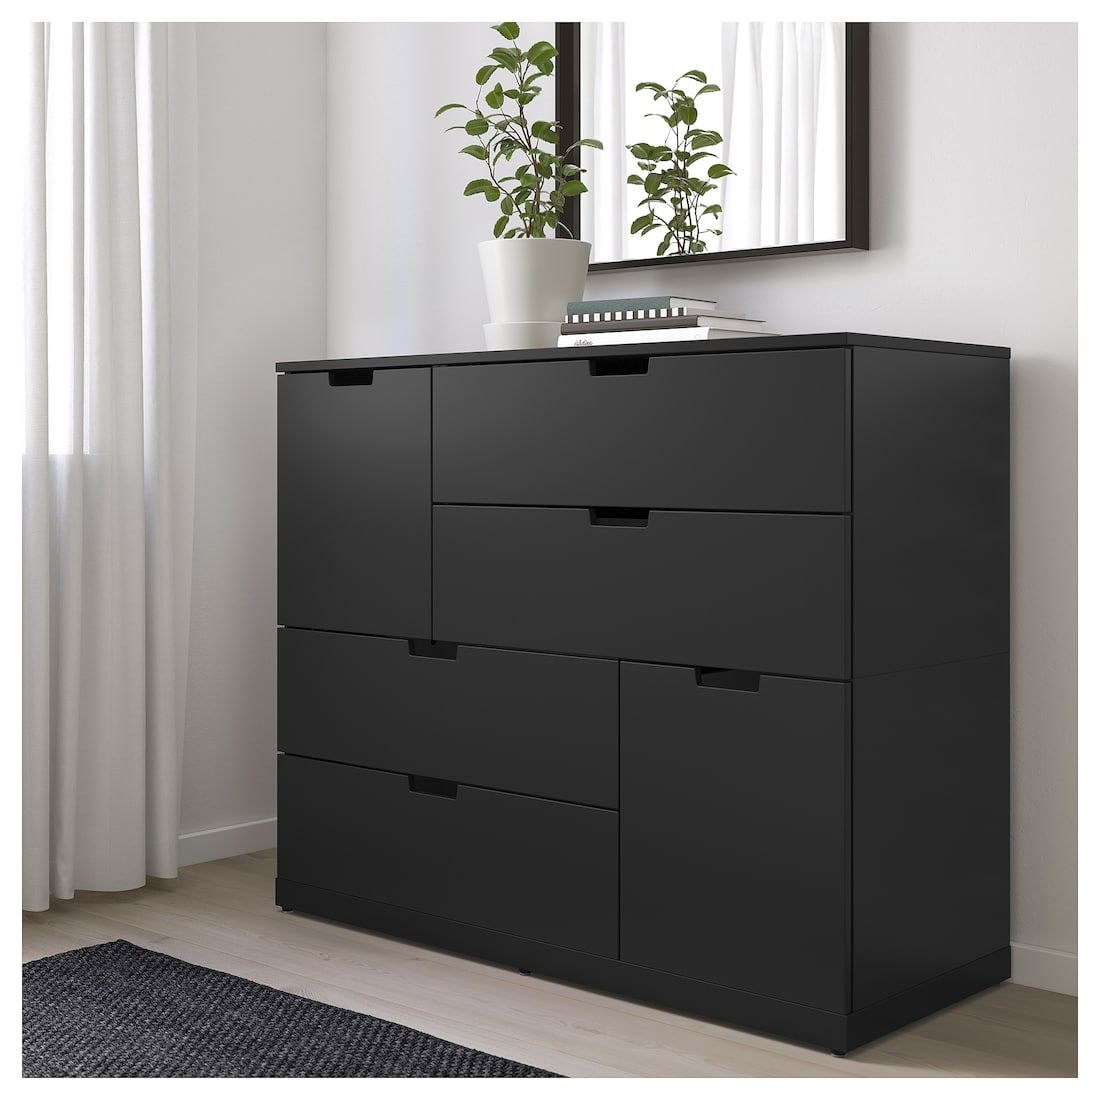 Ikea Us Furniture And Home Furnishings Dresser Drawers Black Dresser Bedroom Ikea Nordli